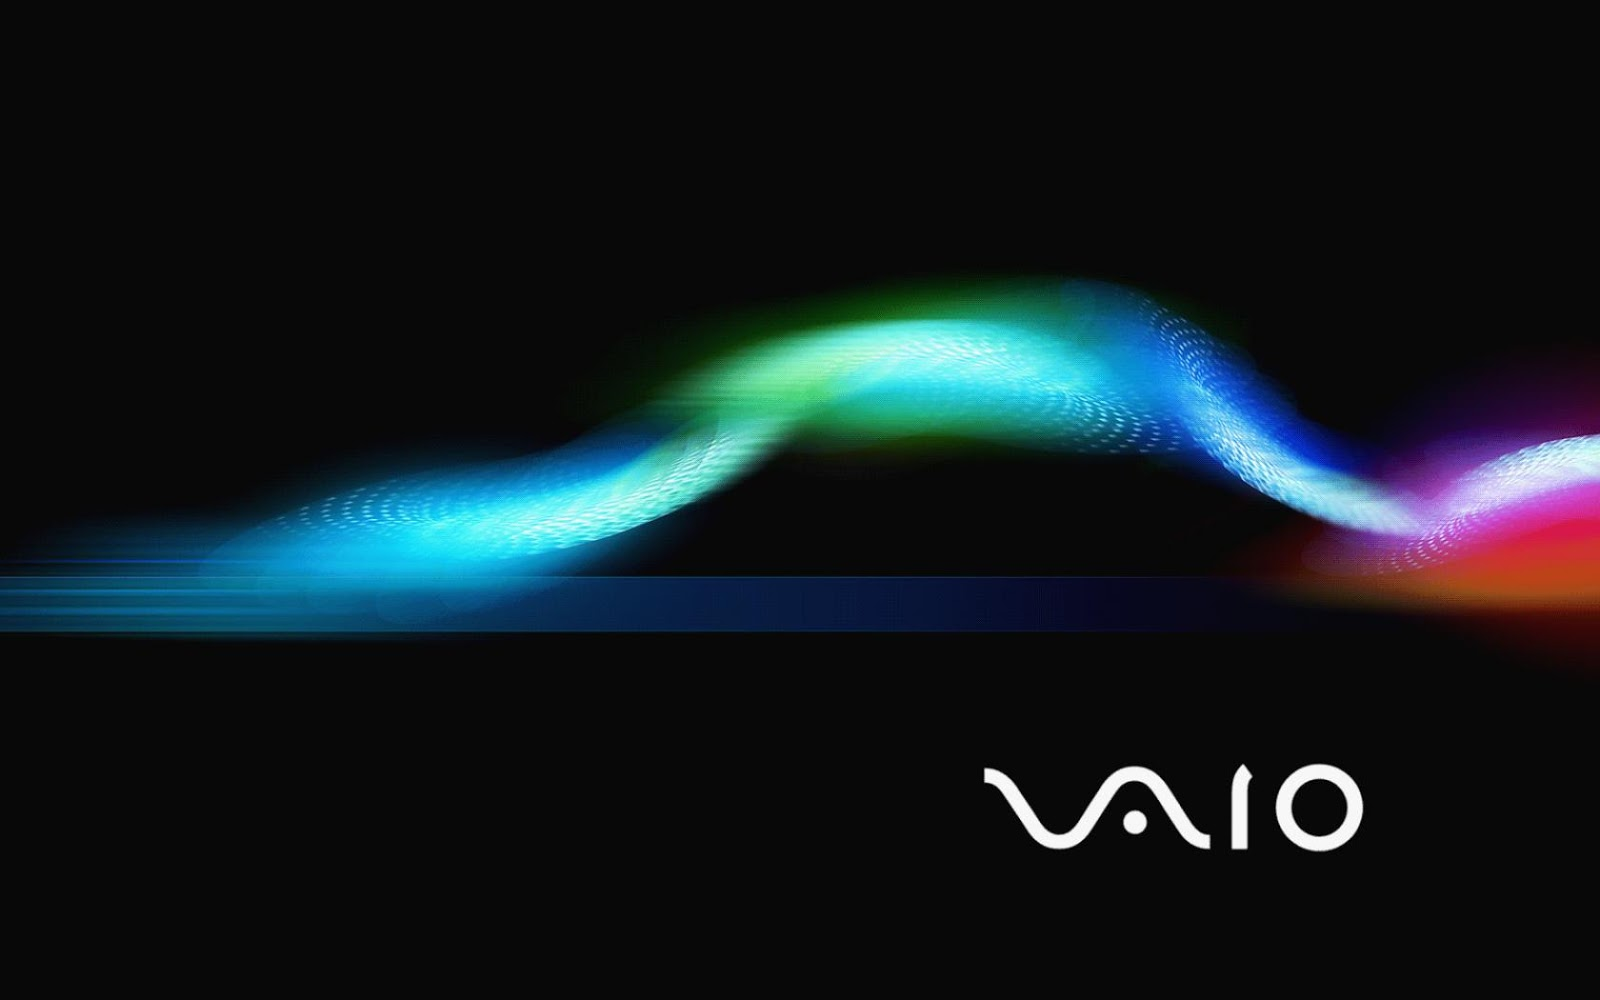 Hd Background Wallpaper 800x600: Shine HD Wallpapers: Vaio Wallpapers HD